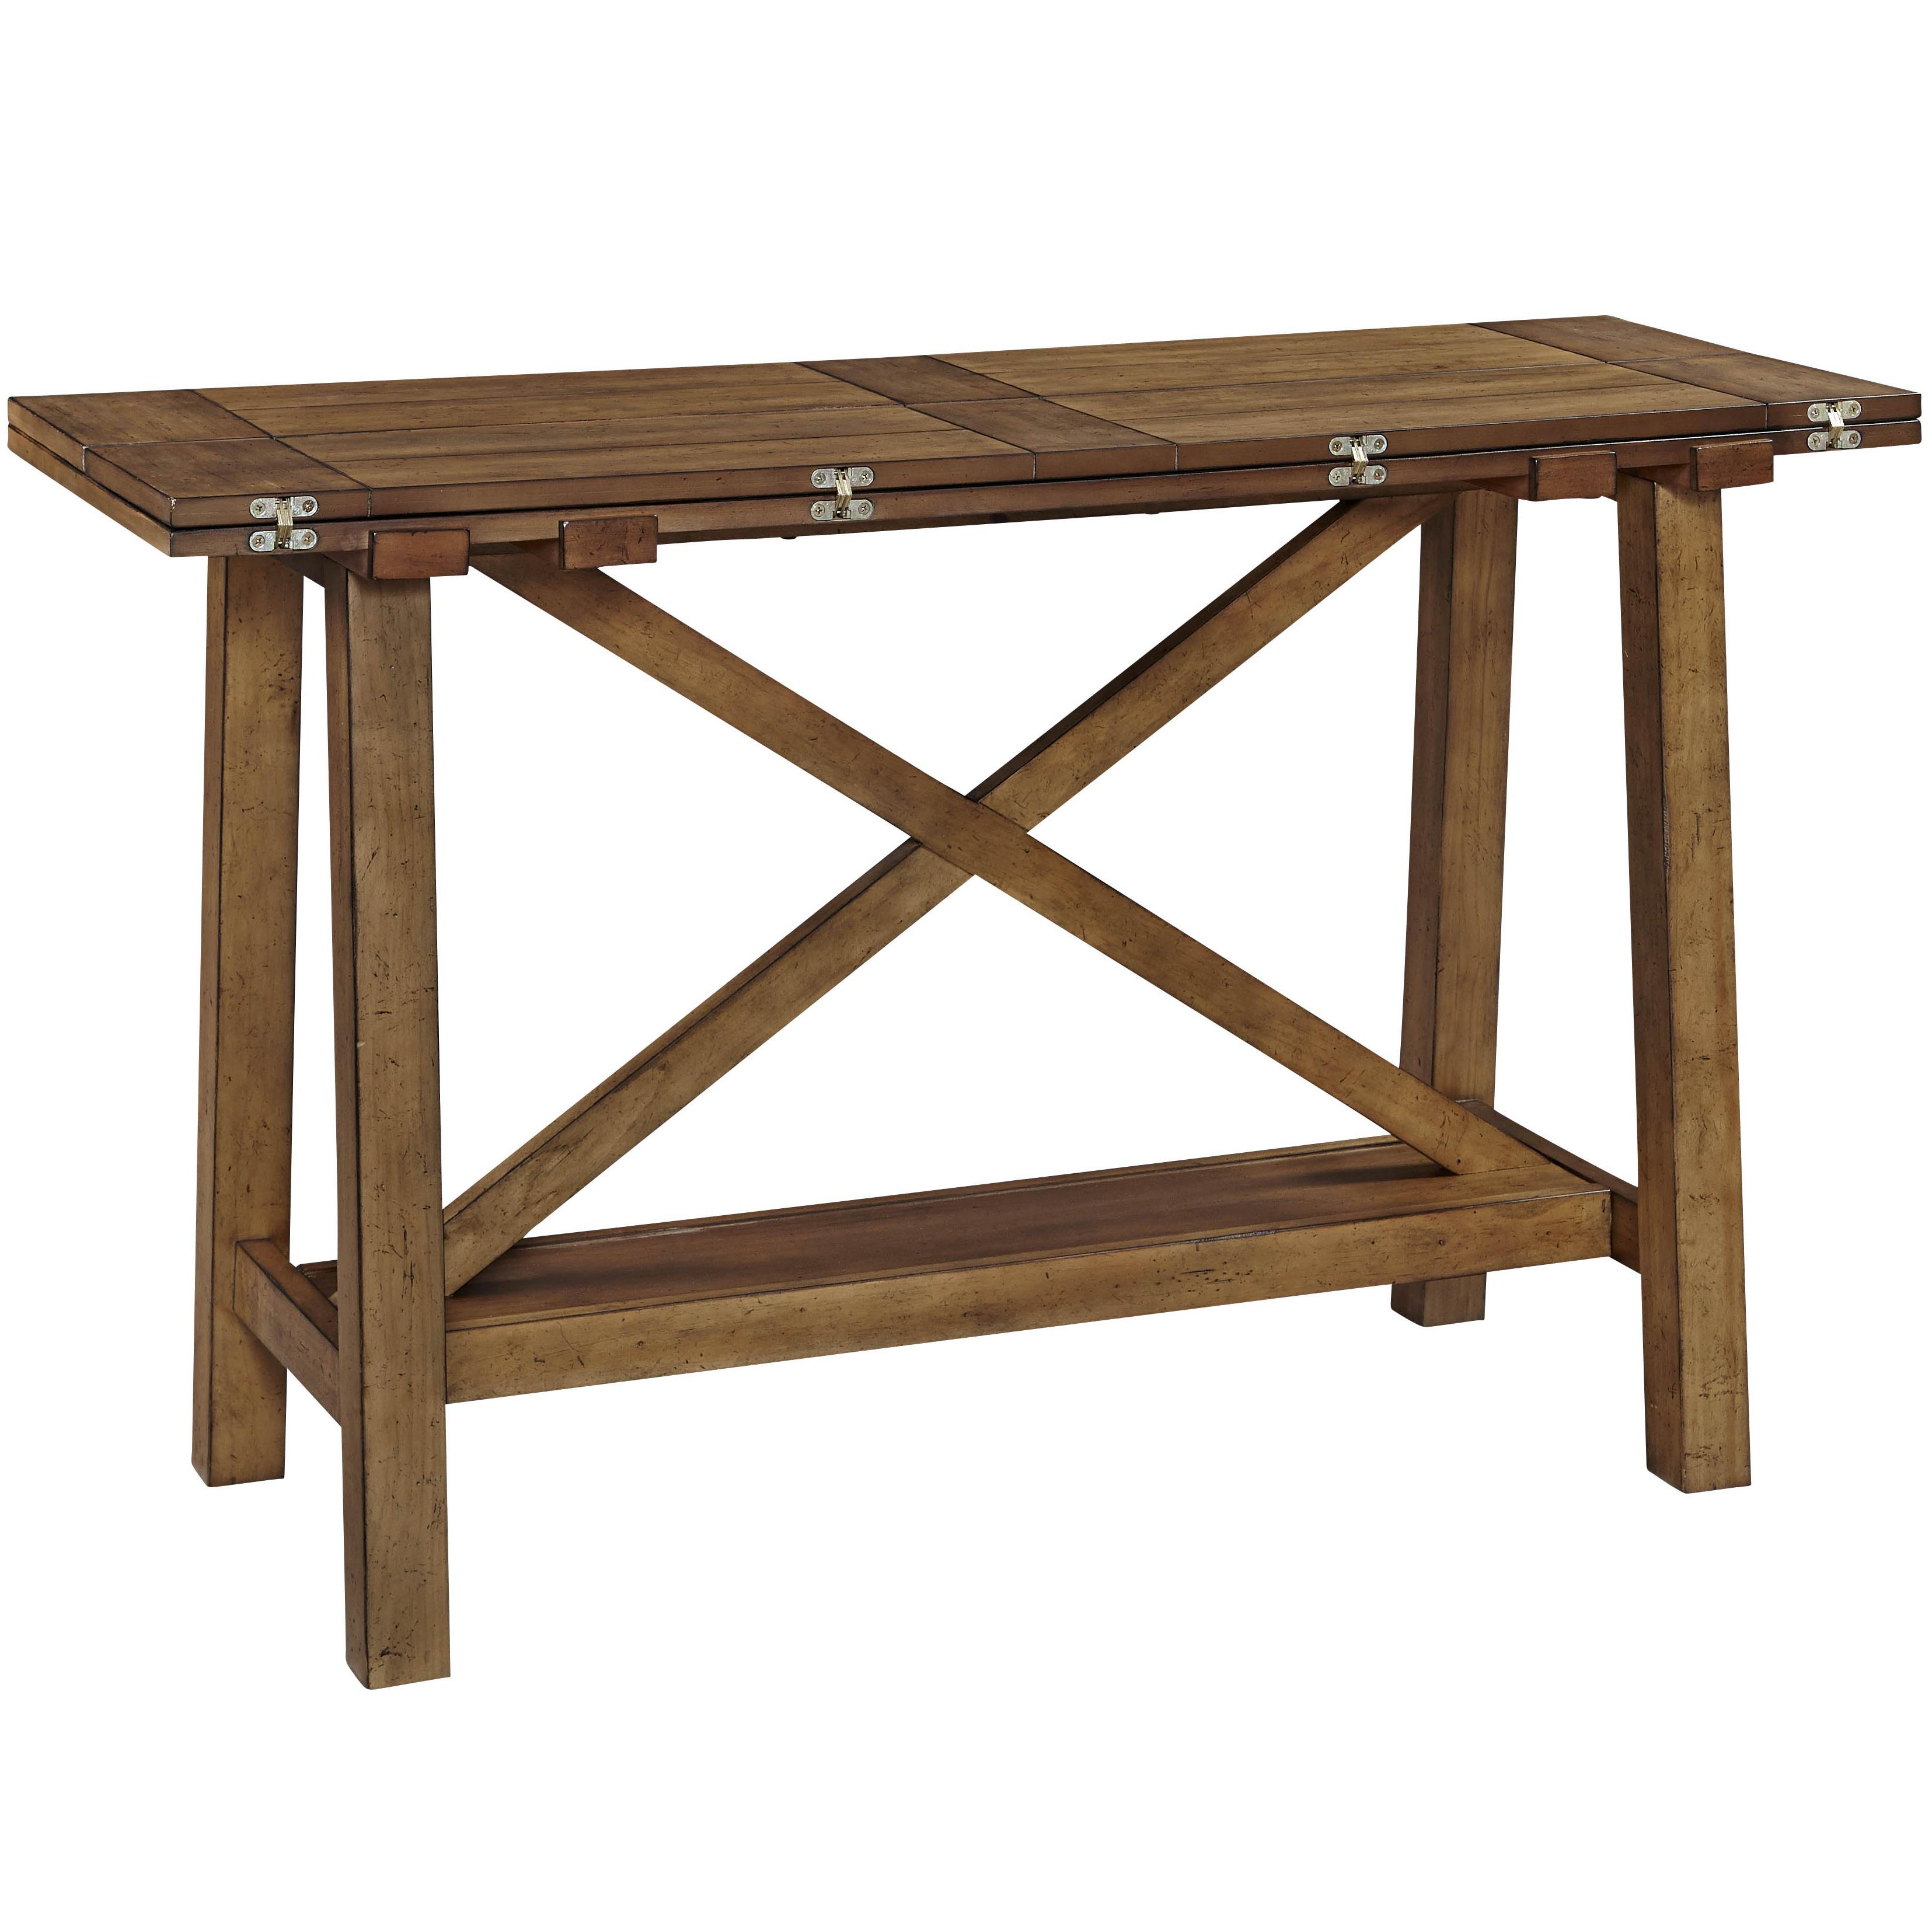 Broyhill Furniture Bethany Square Console Desk Table - Item Number: 4930-009